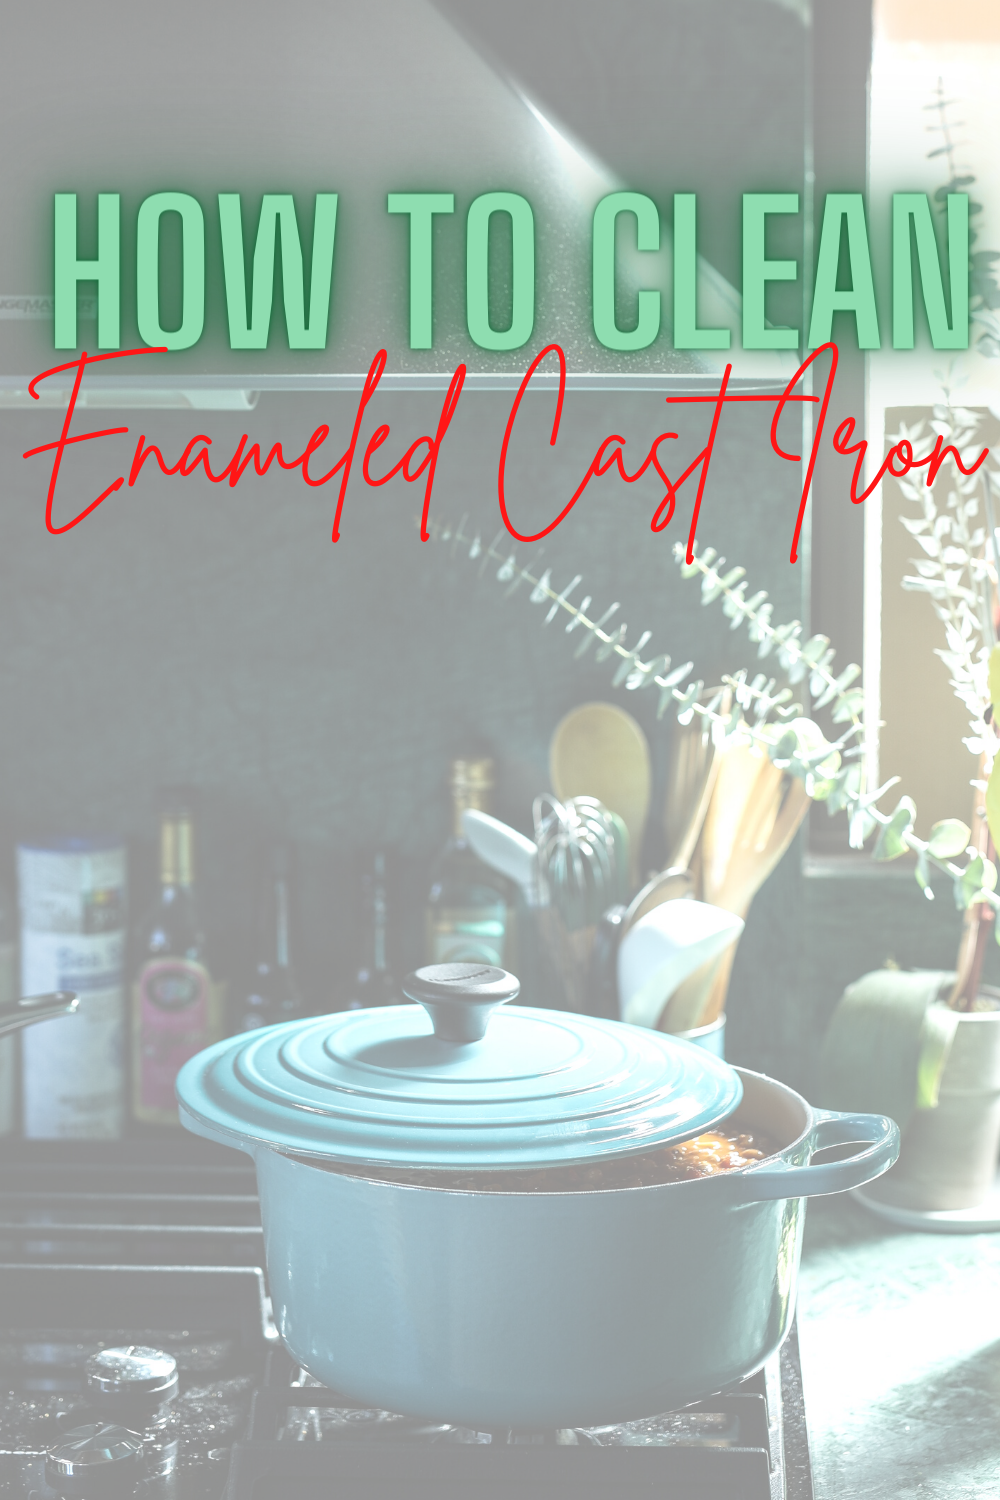 How To Clean Enameled Cast Iron - Wondering how to clean your brand new pan? Today I'm sharing all my best tips for cleaning enameled cast iron! |Cleaning Enameled Cast Iron |How To Clean Cast Iron |Cleaning A Dutch Oven